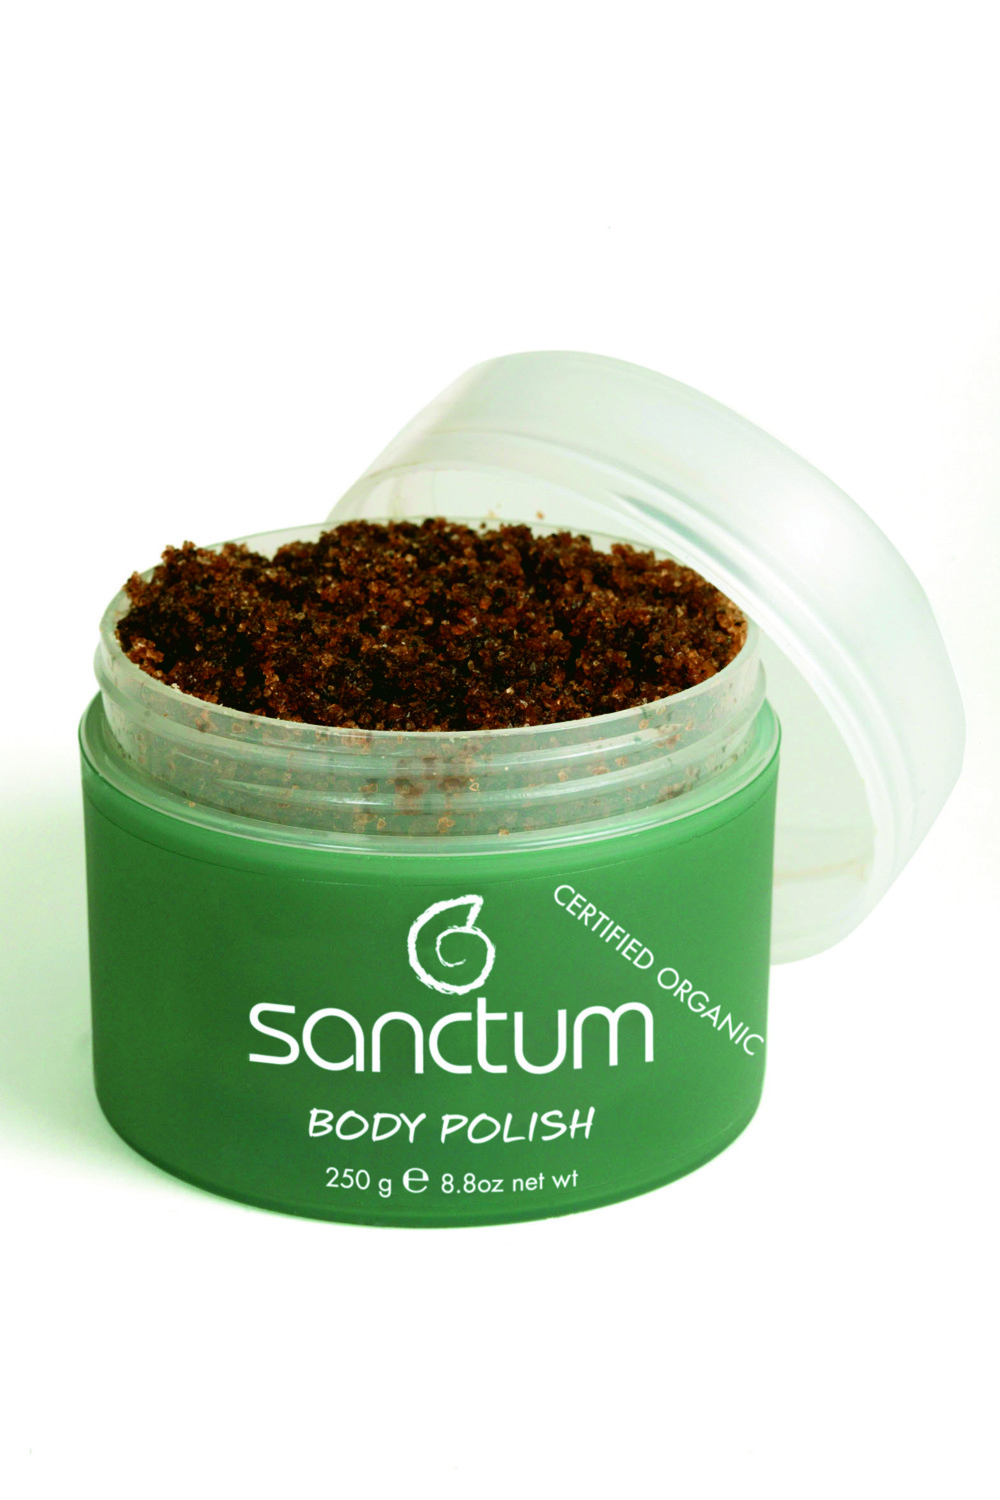 Sanctum Body Polish (250g)